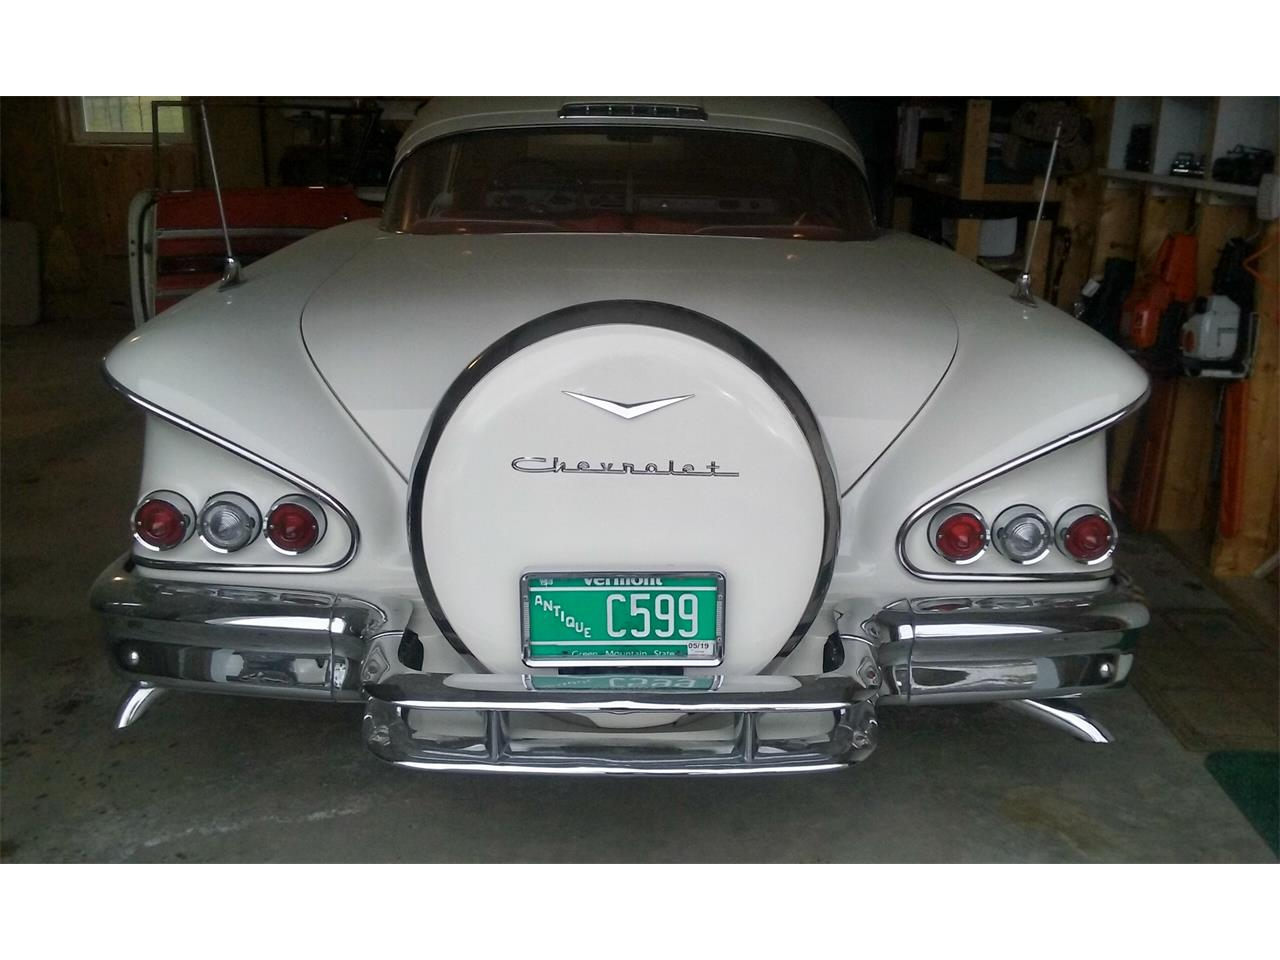 Large Picture of Classic 1958 Chevrolet Impala - $42,000.00 Offered by a Private Seller - PPBM